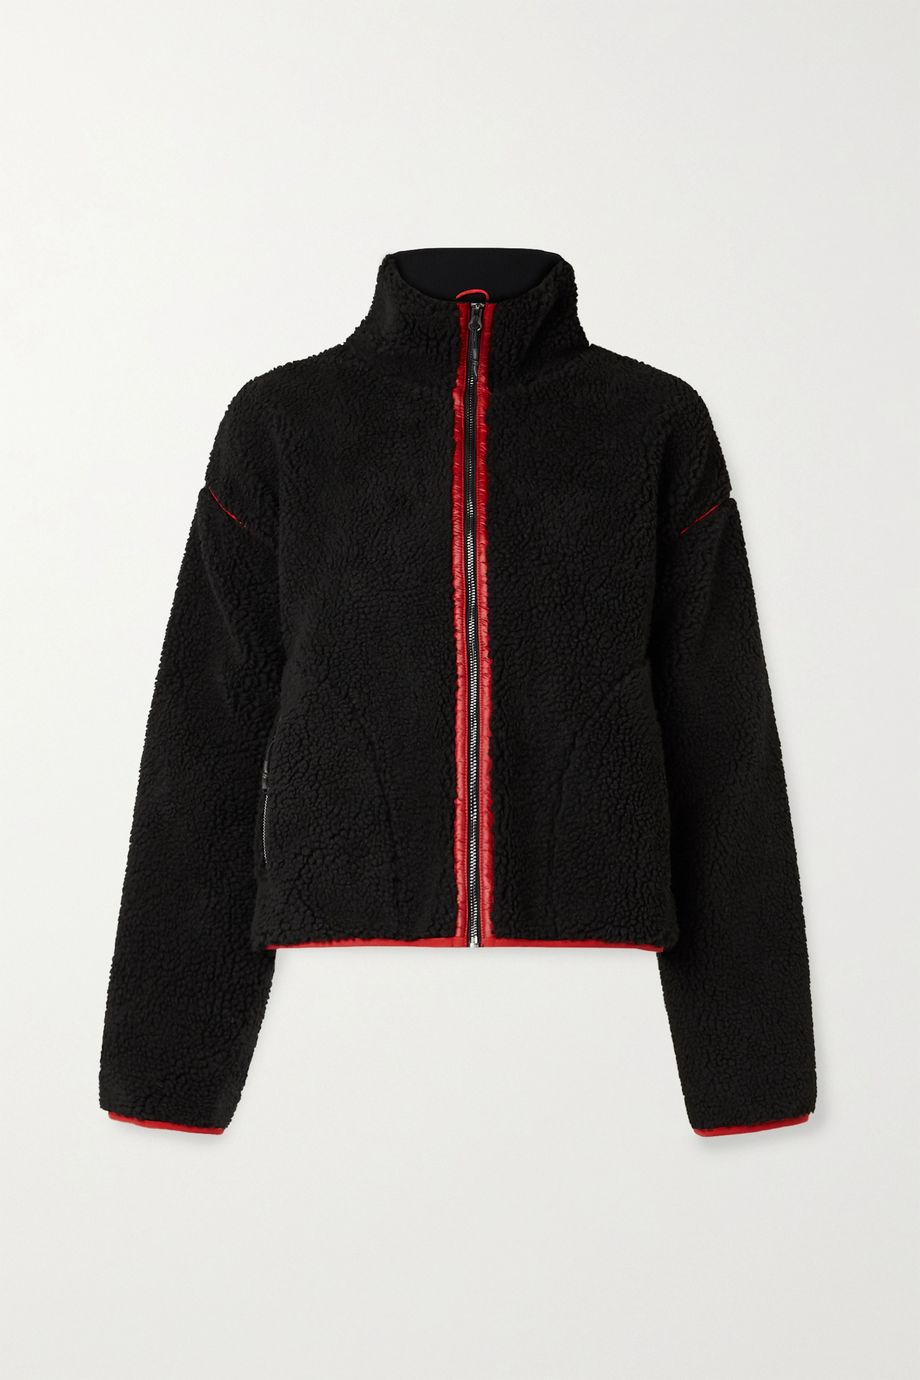 All Access Soundtrack faux shearling jacket